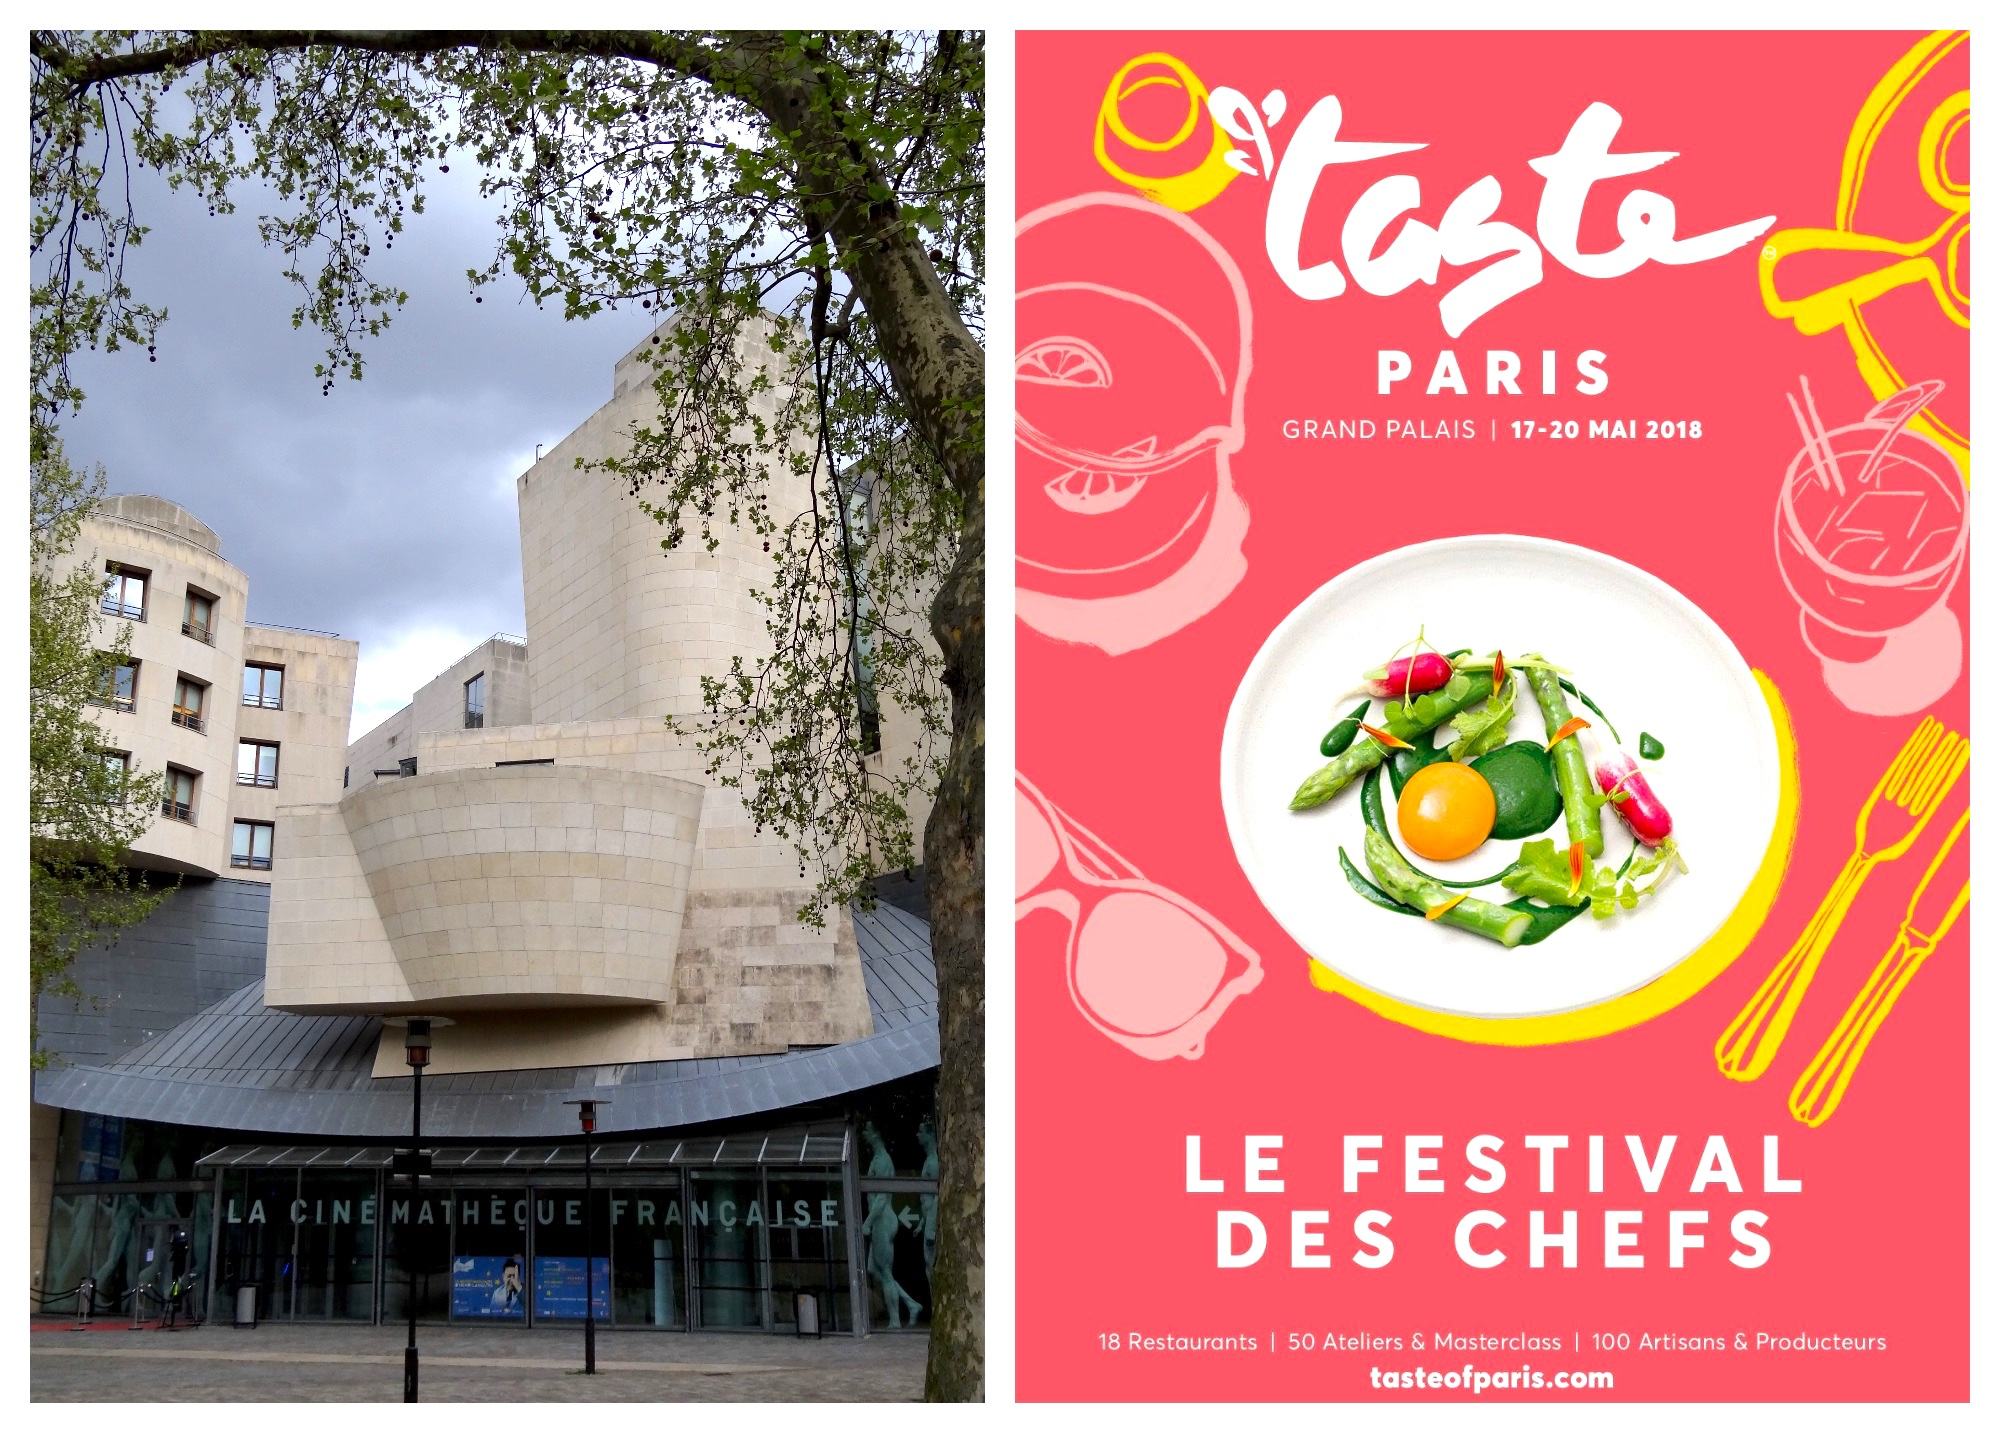 Events in Paris in May, including a film festival at Frank Gehry-designed cinematheque (left) and food festivals (right).